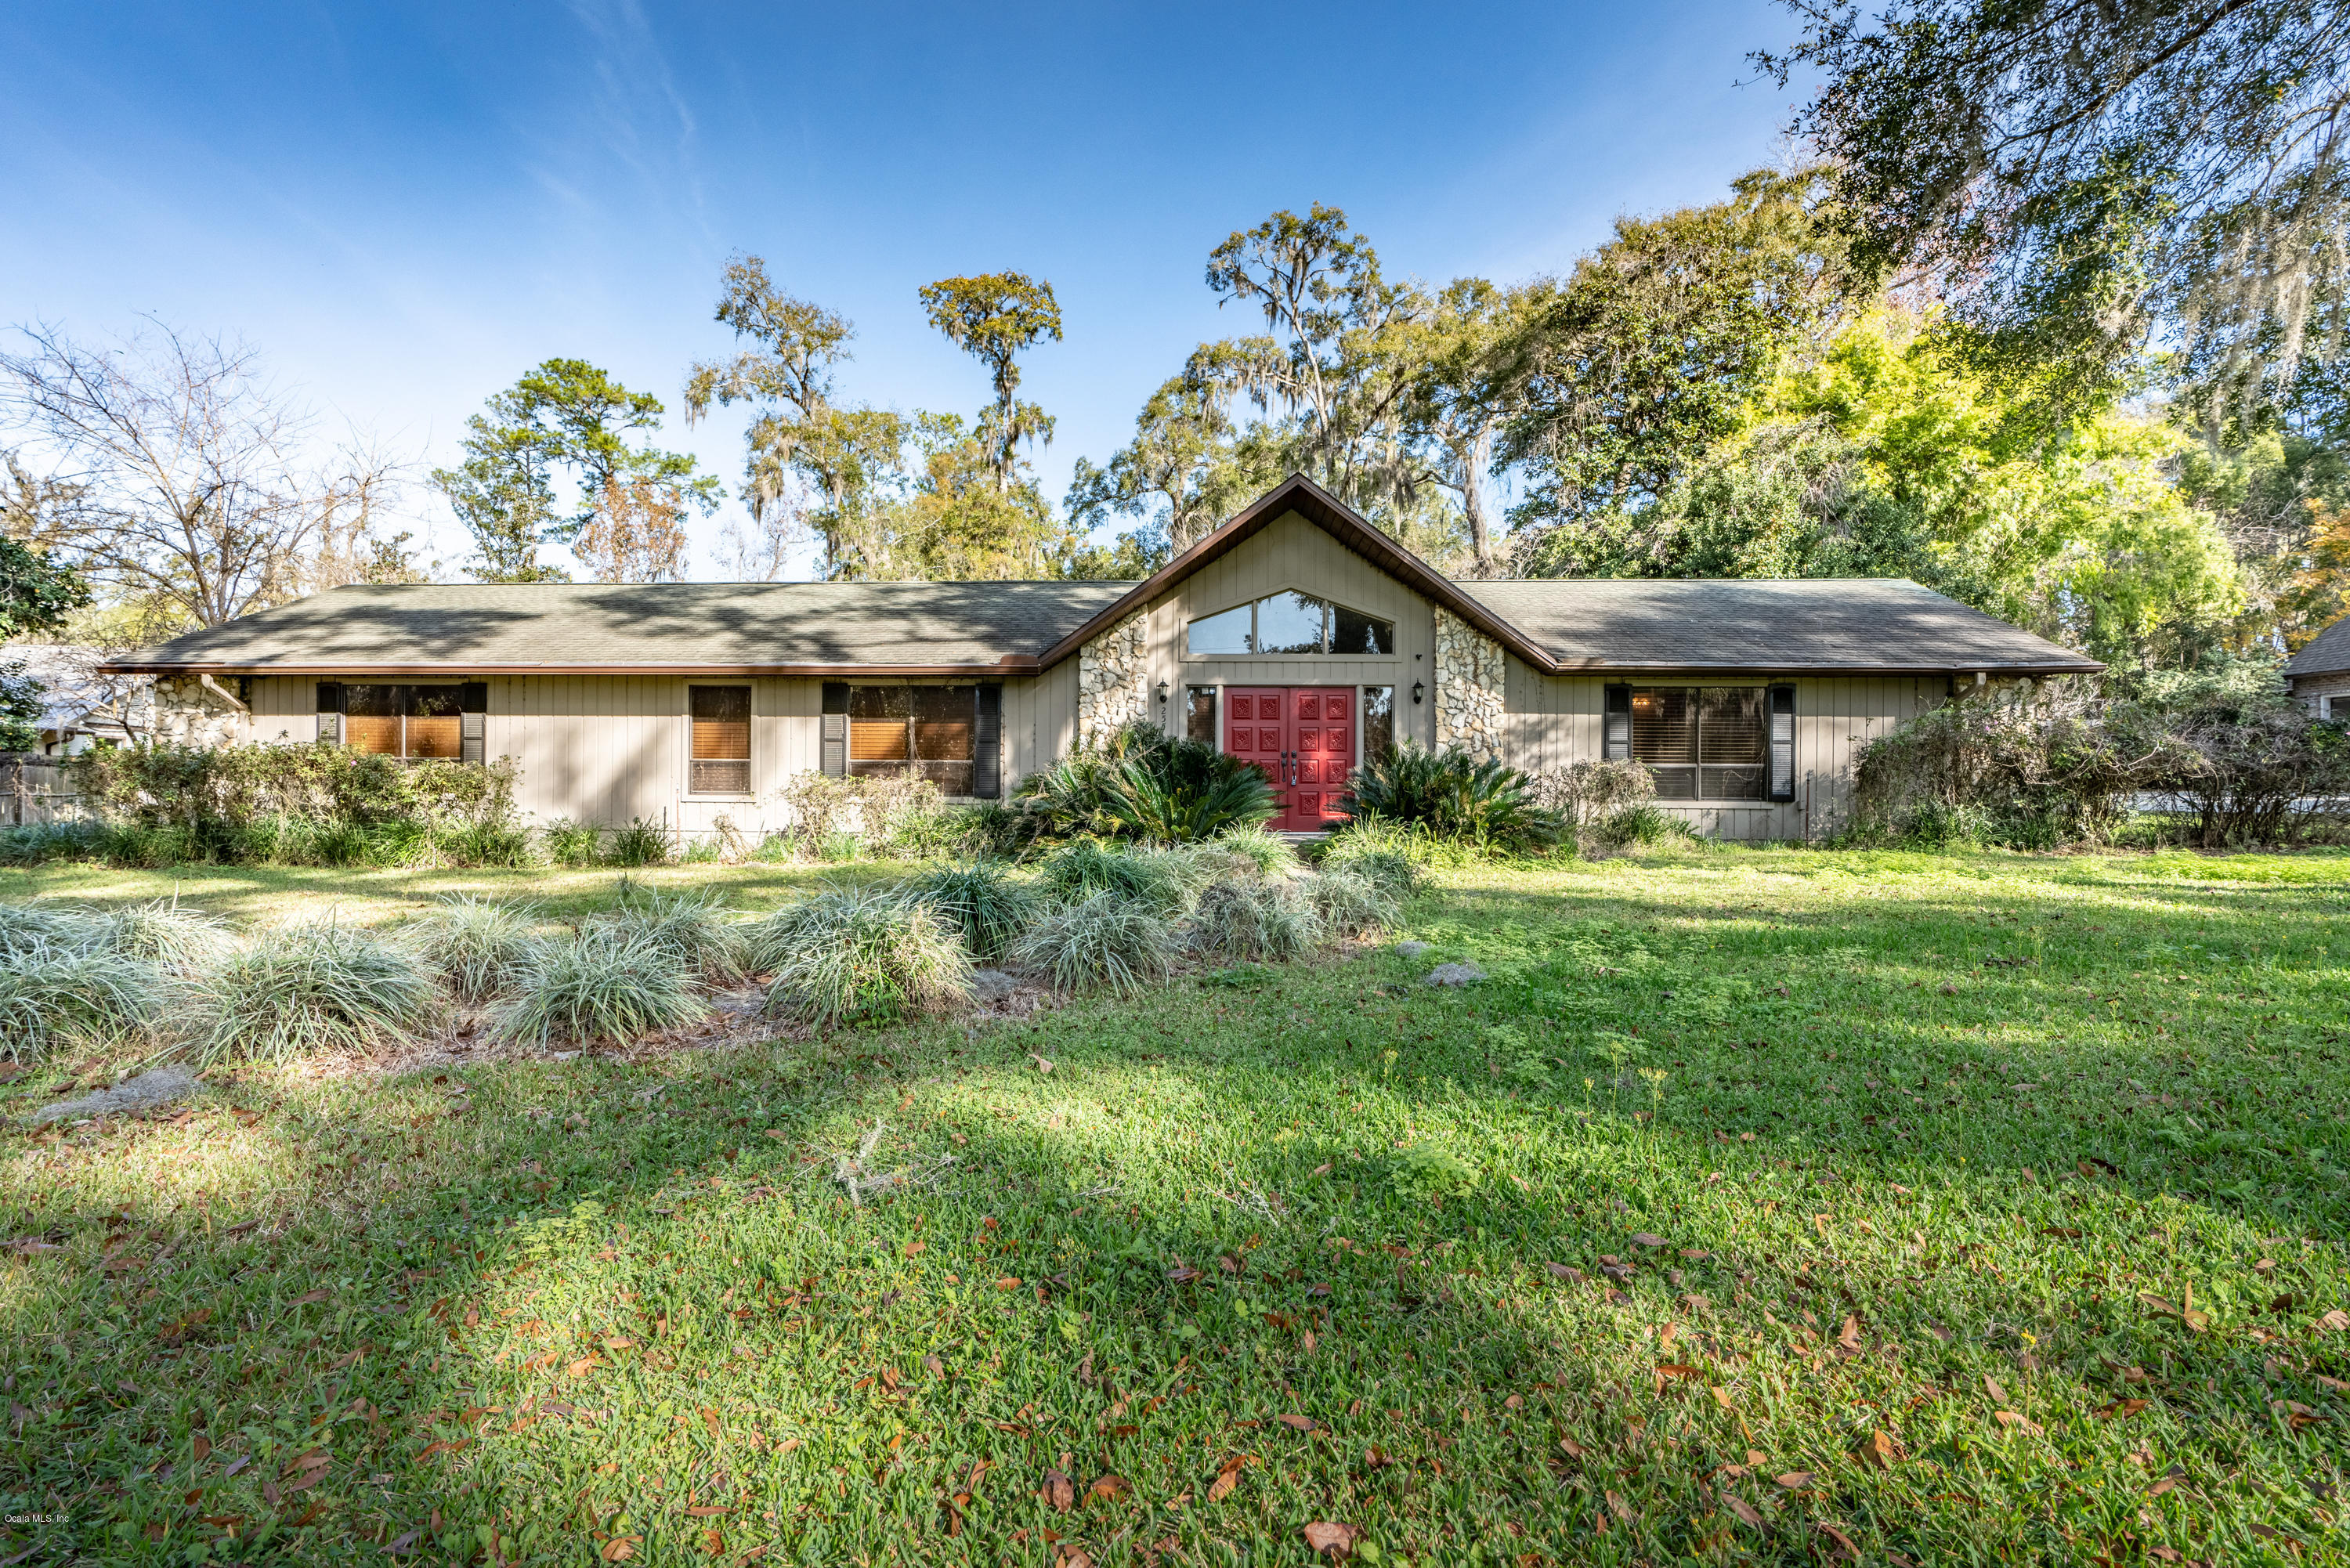 One of Ocala 5 Bedroom Homes for Sale at 2551 SE 40 Street